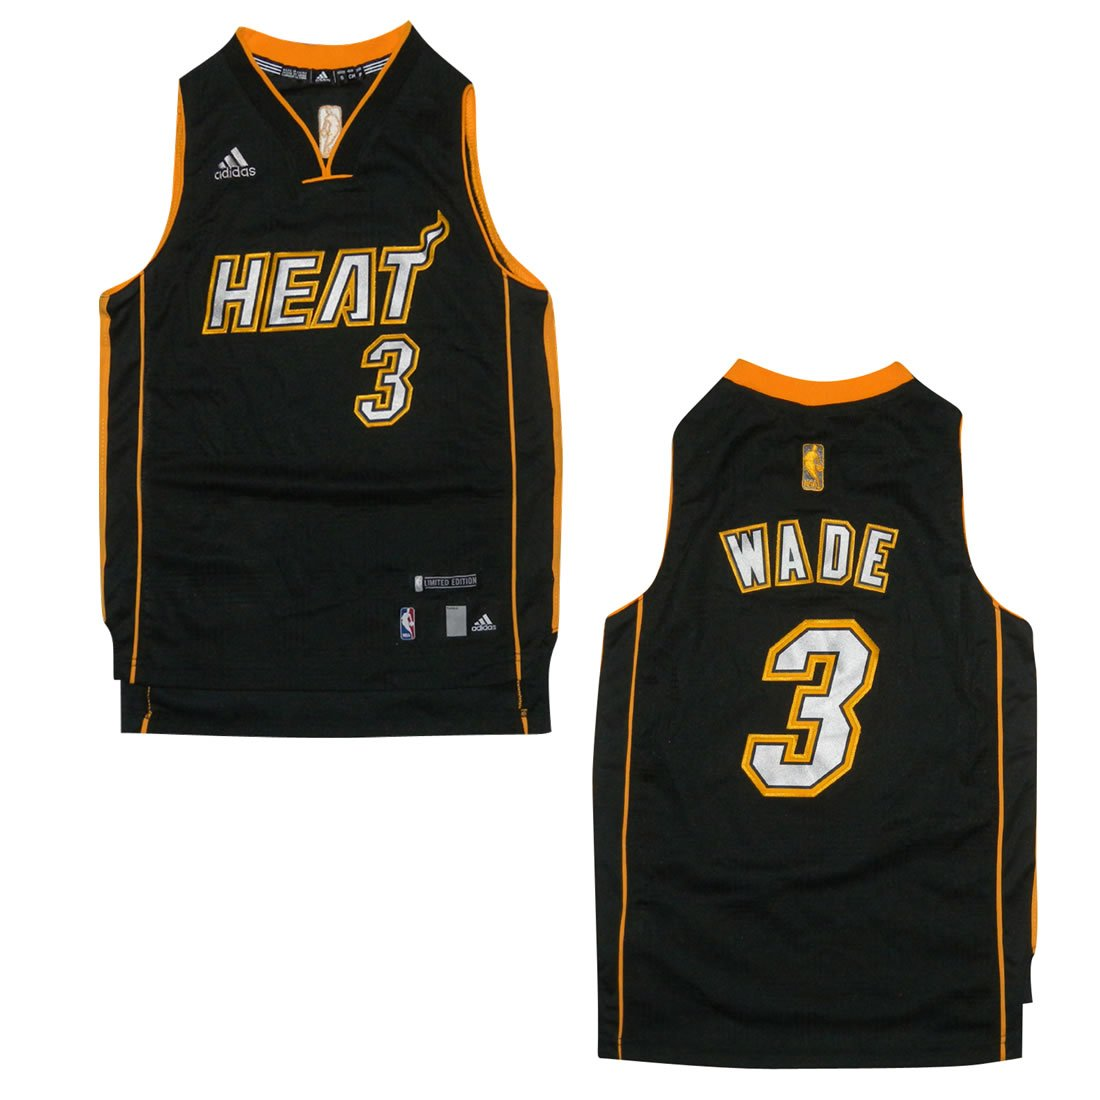 pretty nice 5fe13 9a077 LIMITED EDITION: YOUTH NBA Miami Heat Wade #3 Pro Quality ...